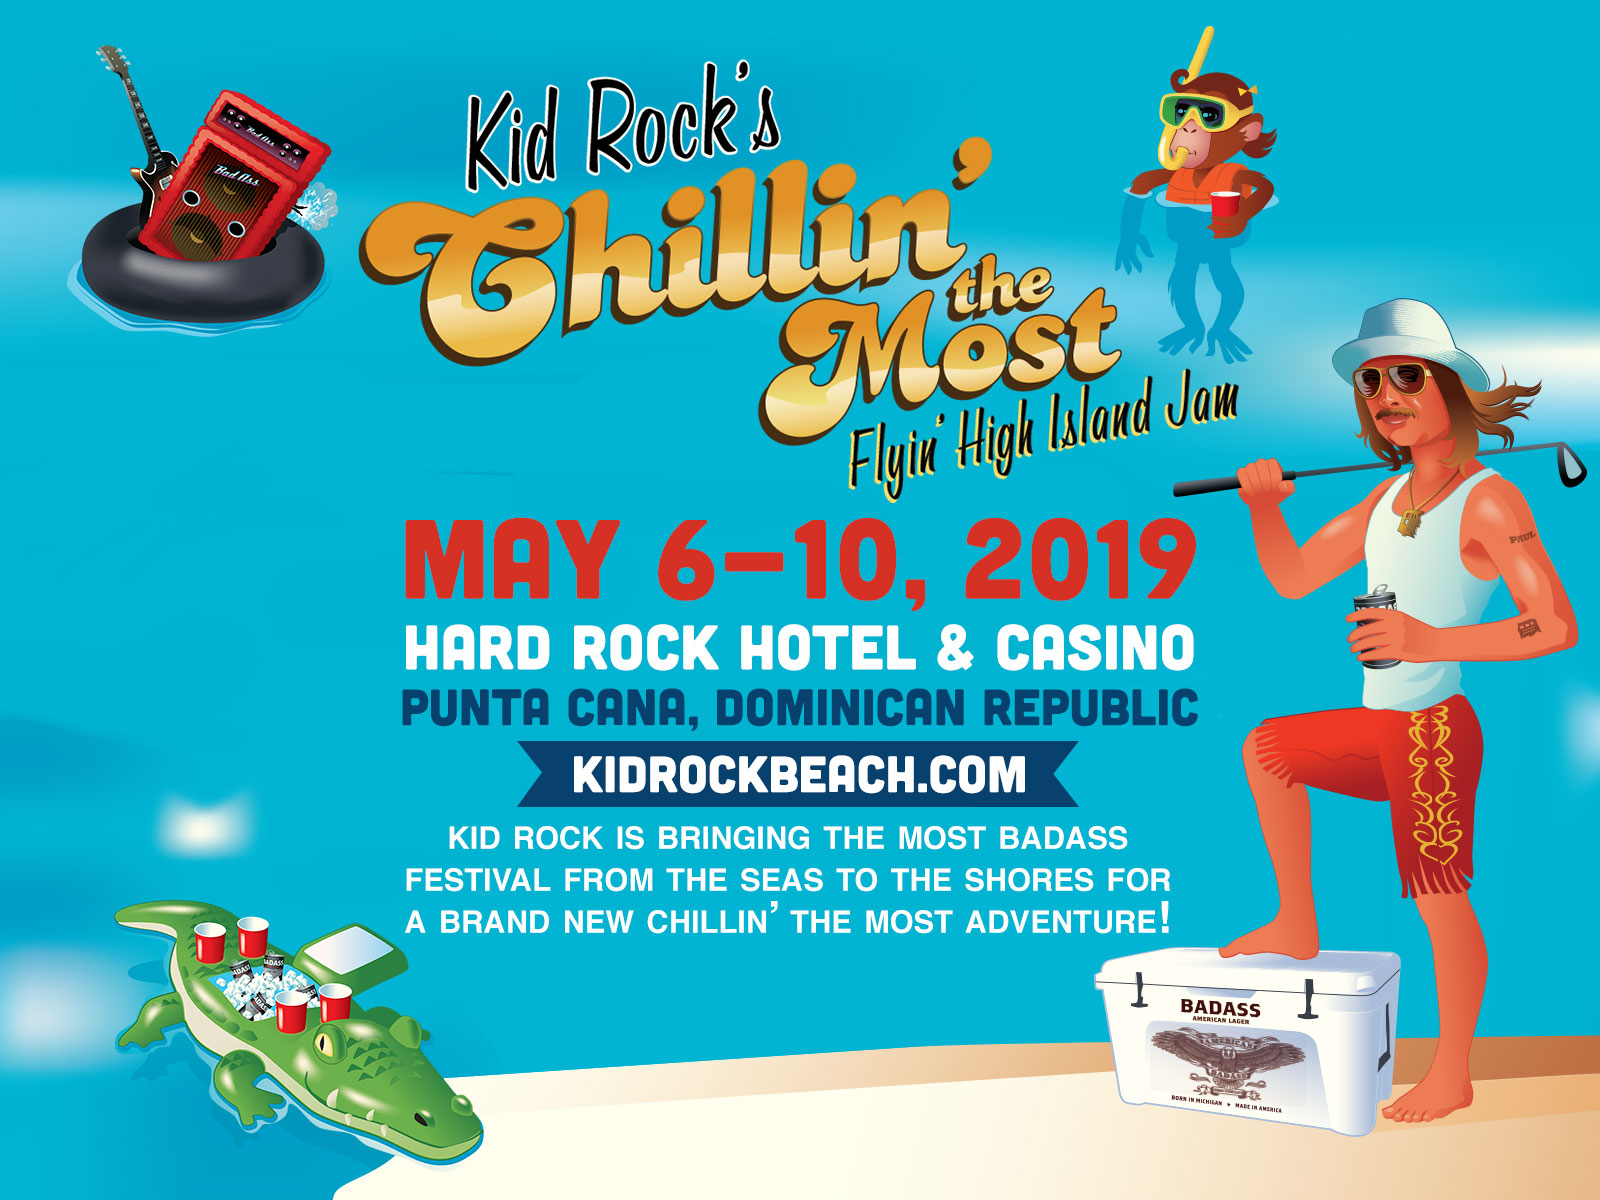 Kid Rock's Chillin' the Most Flyin' High Island Jam